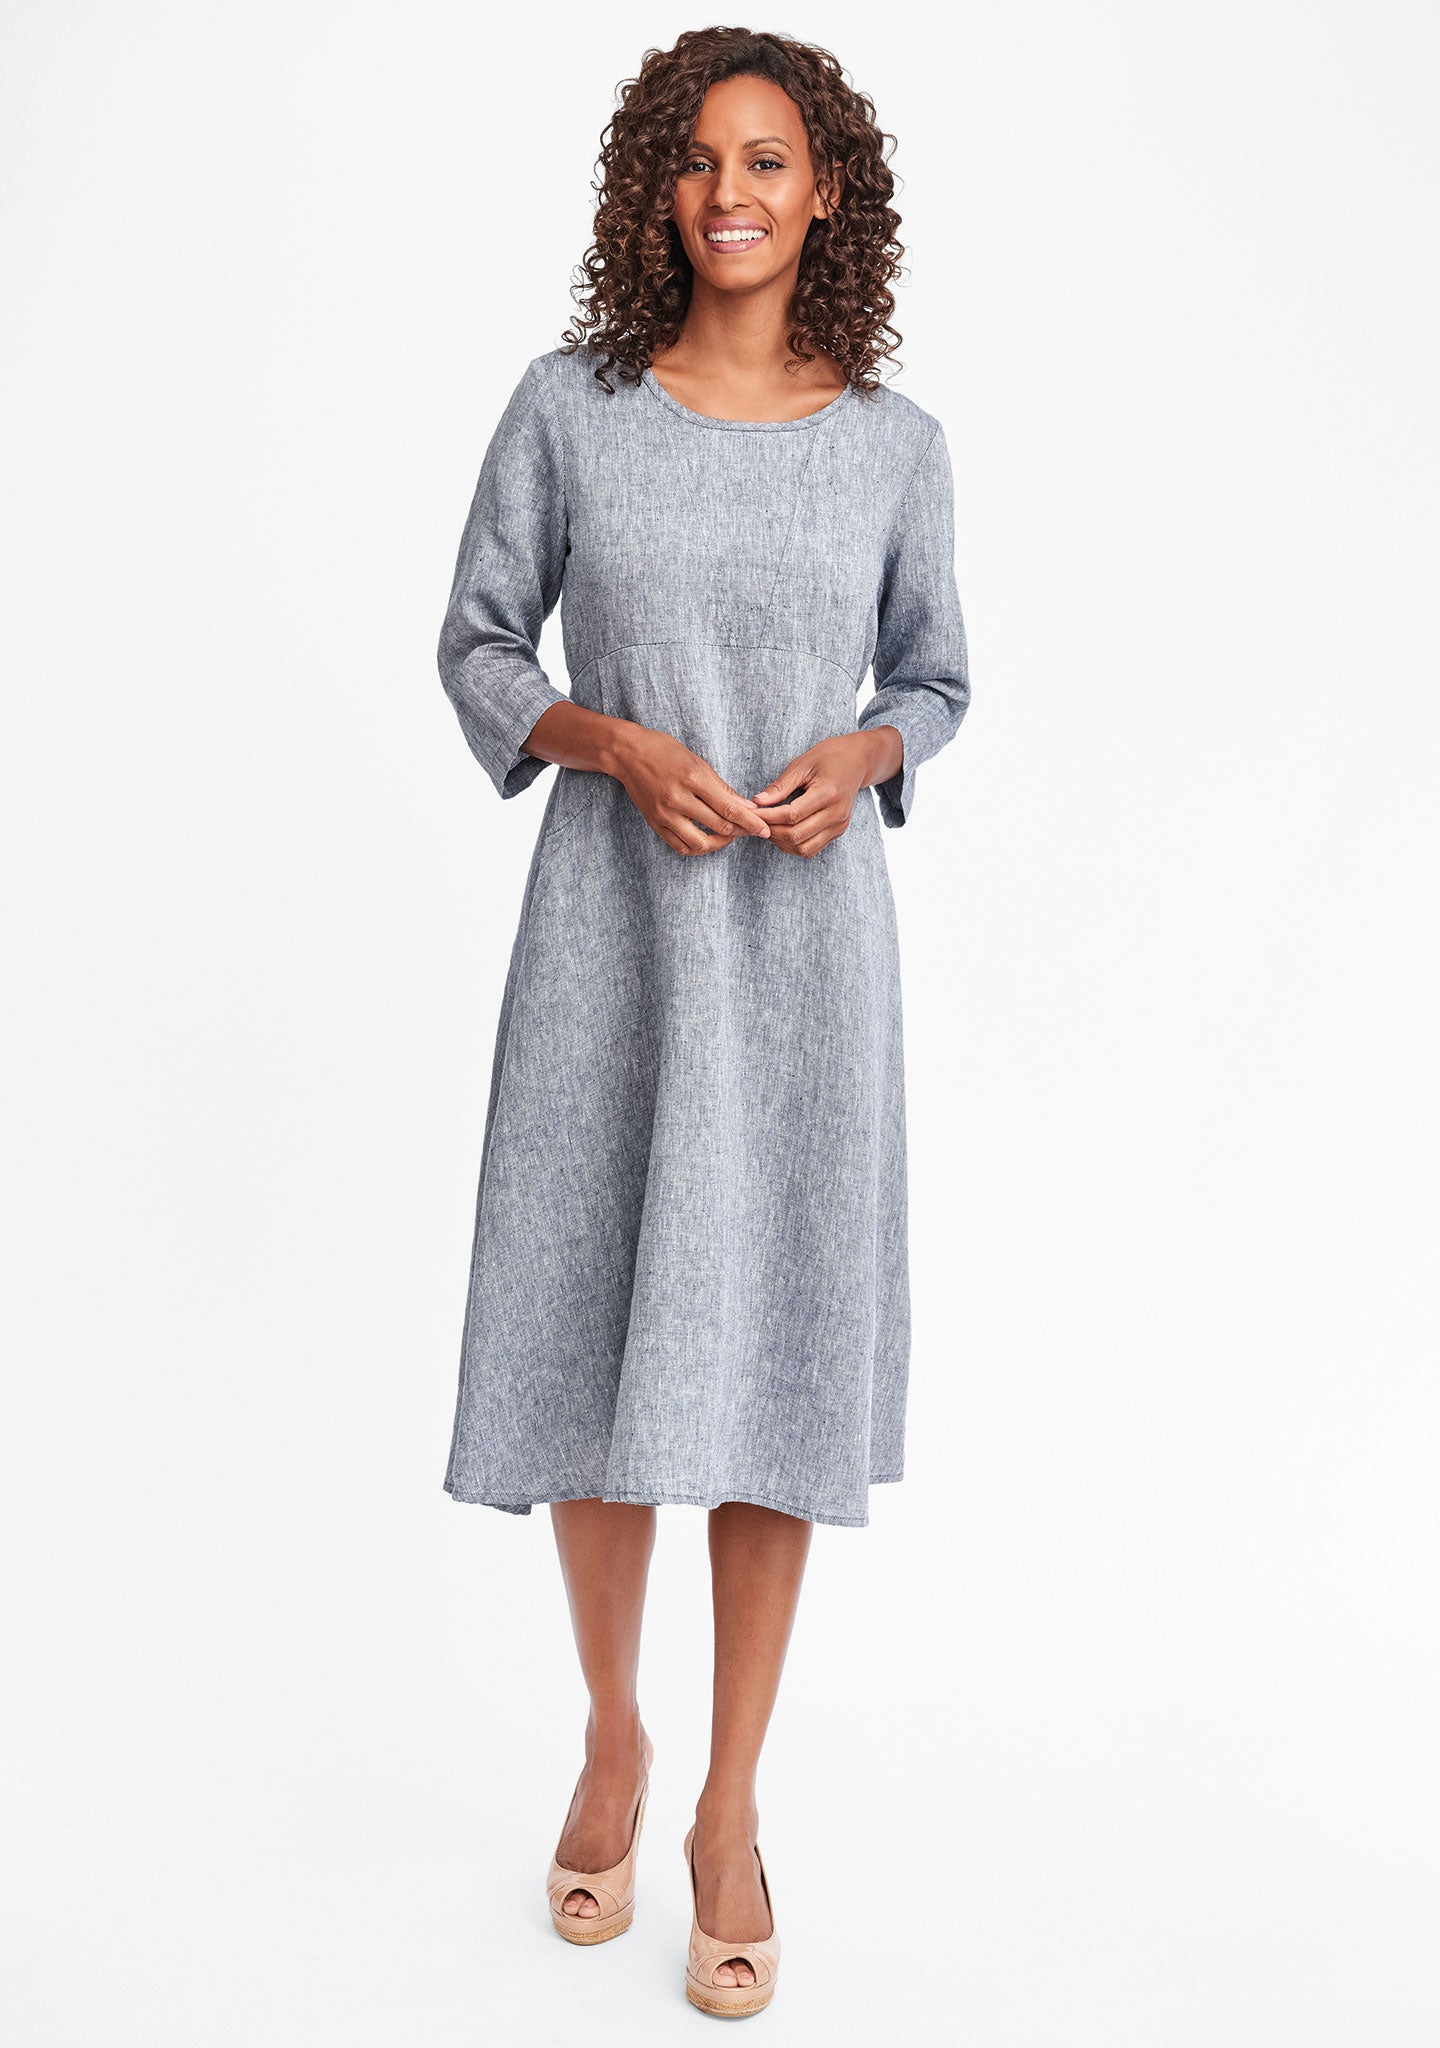 dashing dress linen midi dress blue